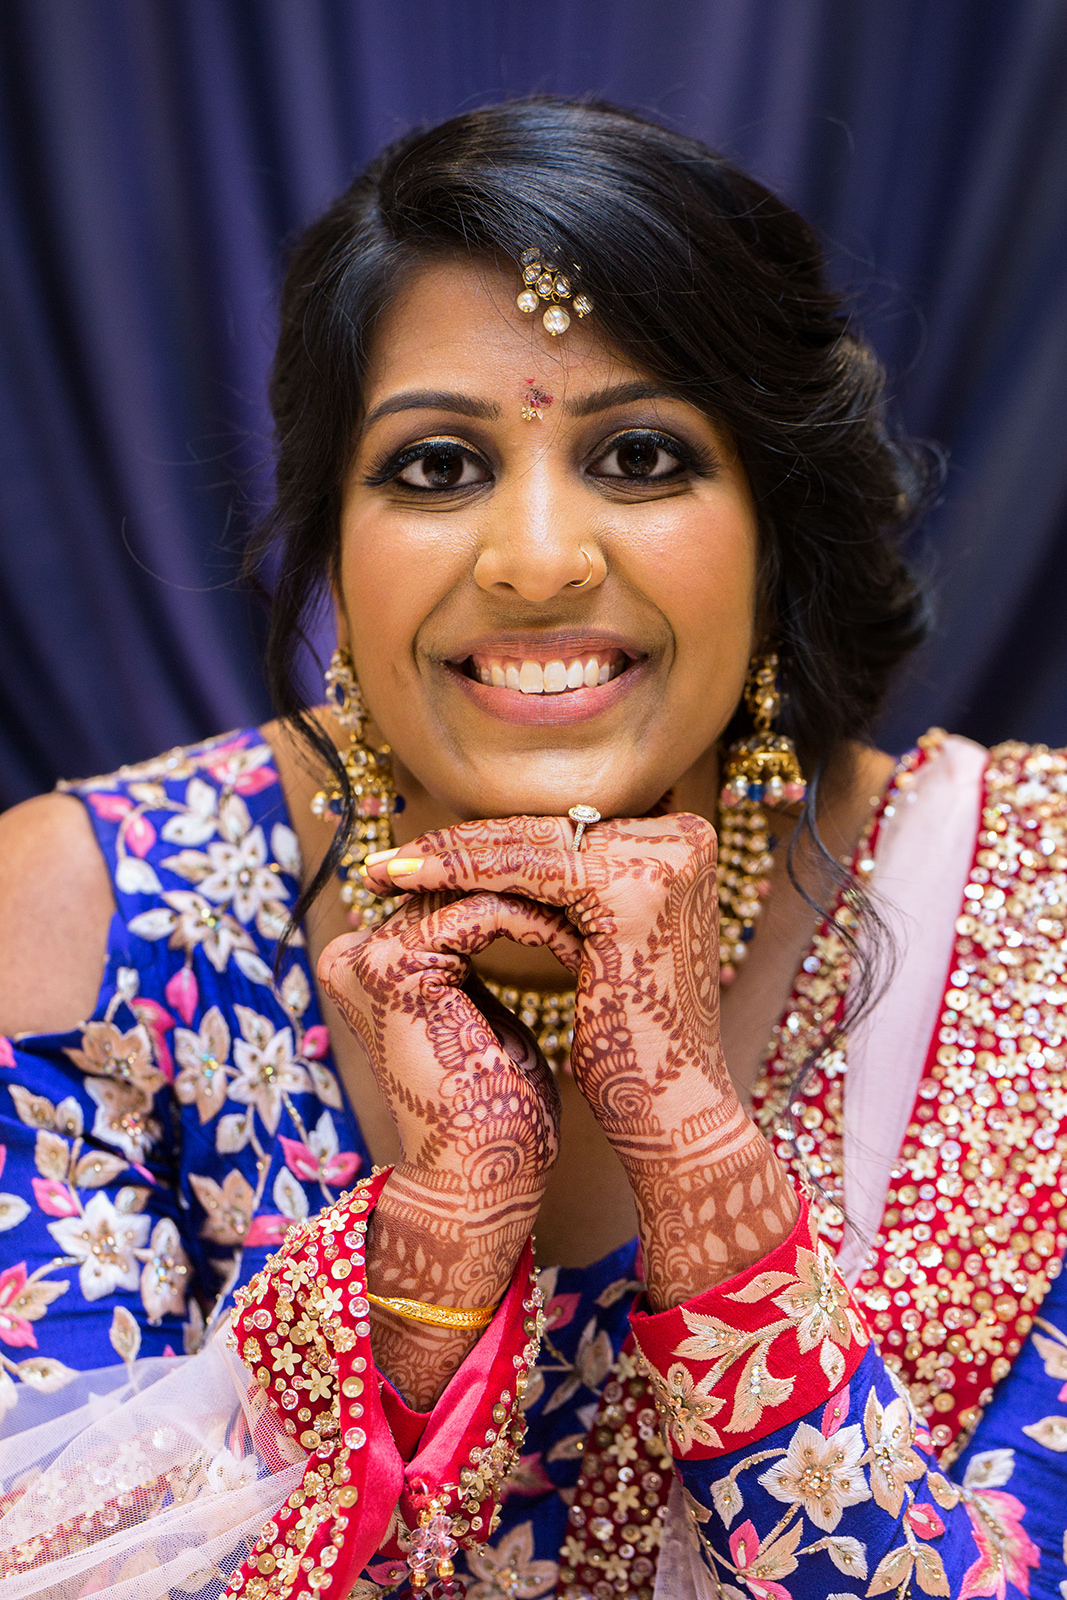 Le Cape Weddings - Swati and Ankur - Sneak Peek -24.jpg